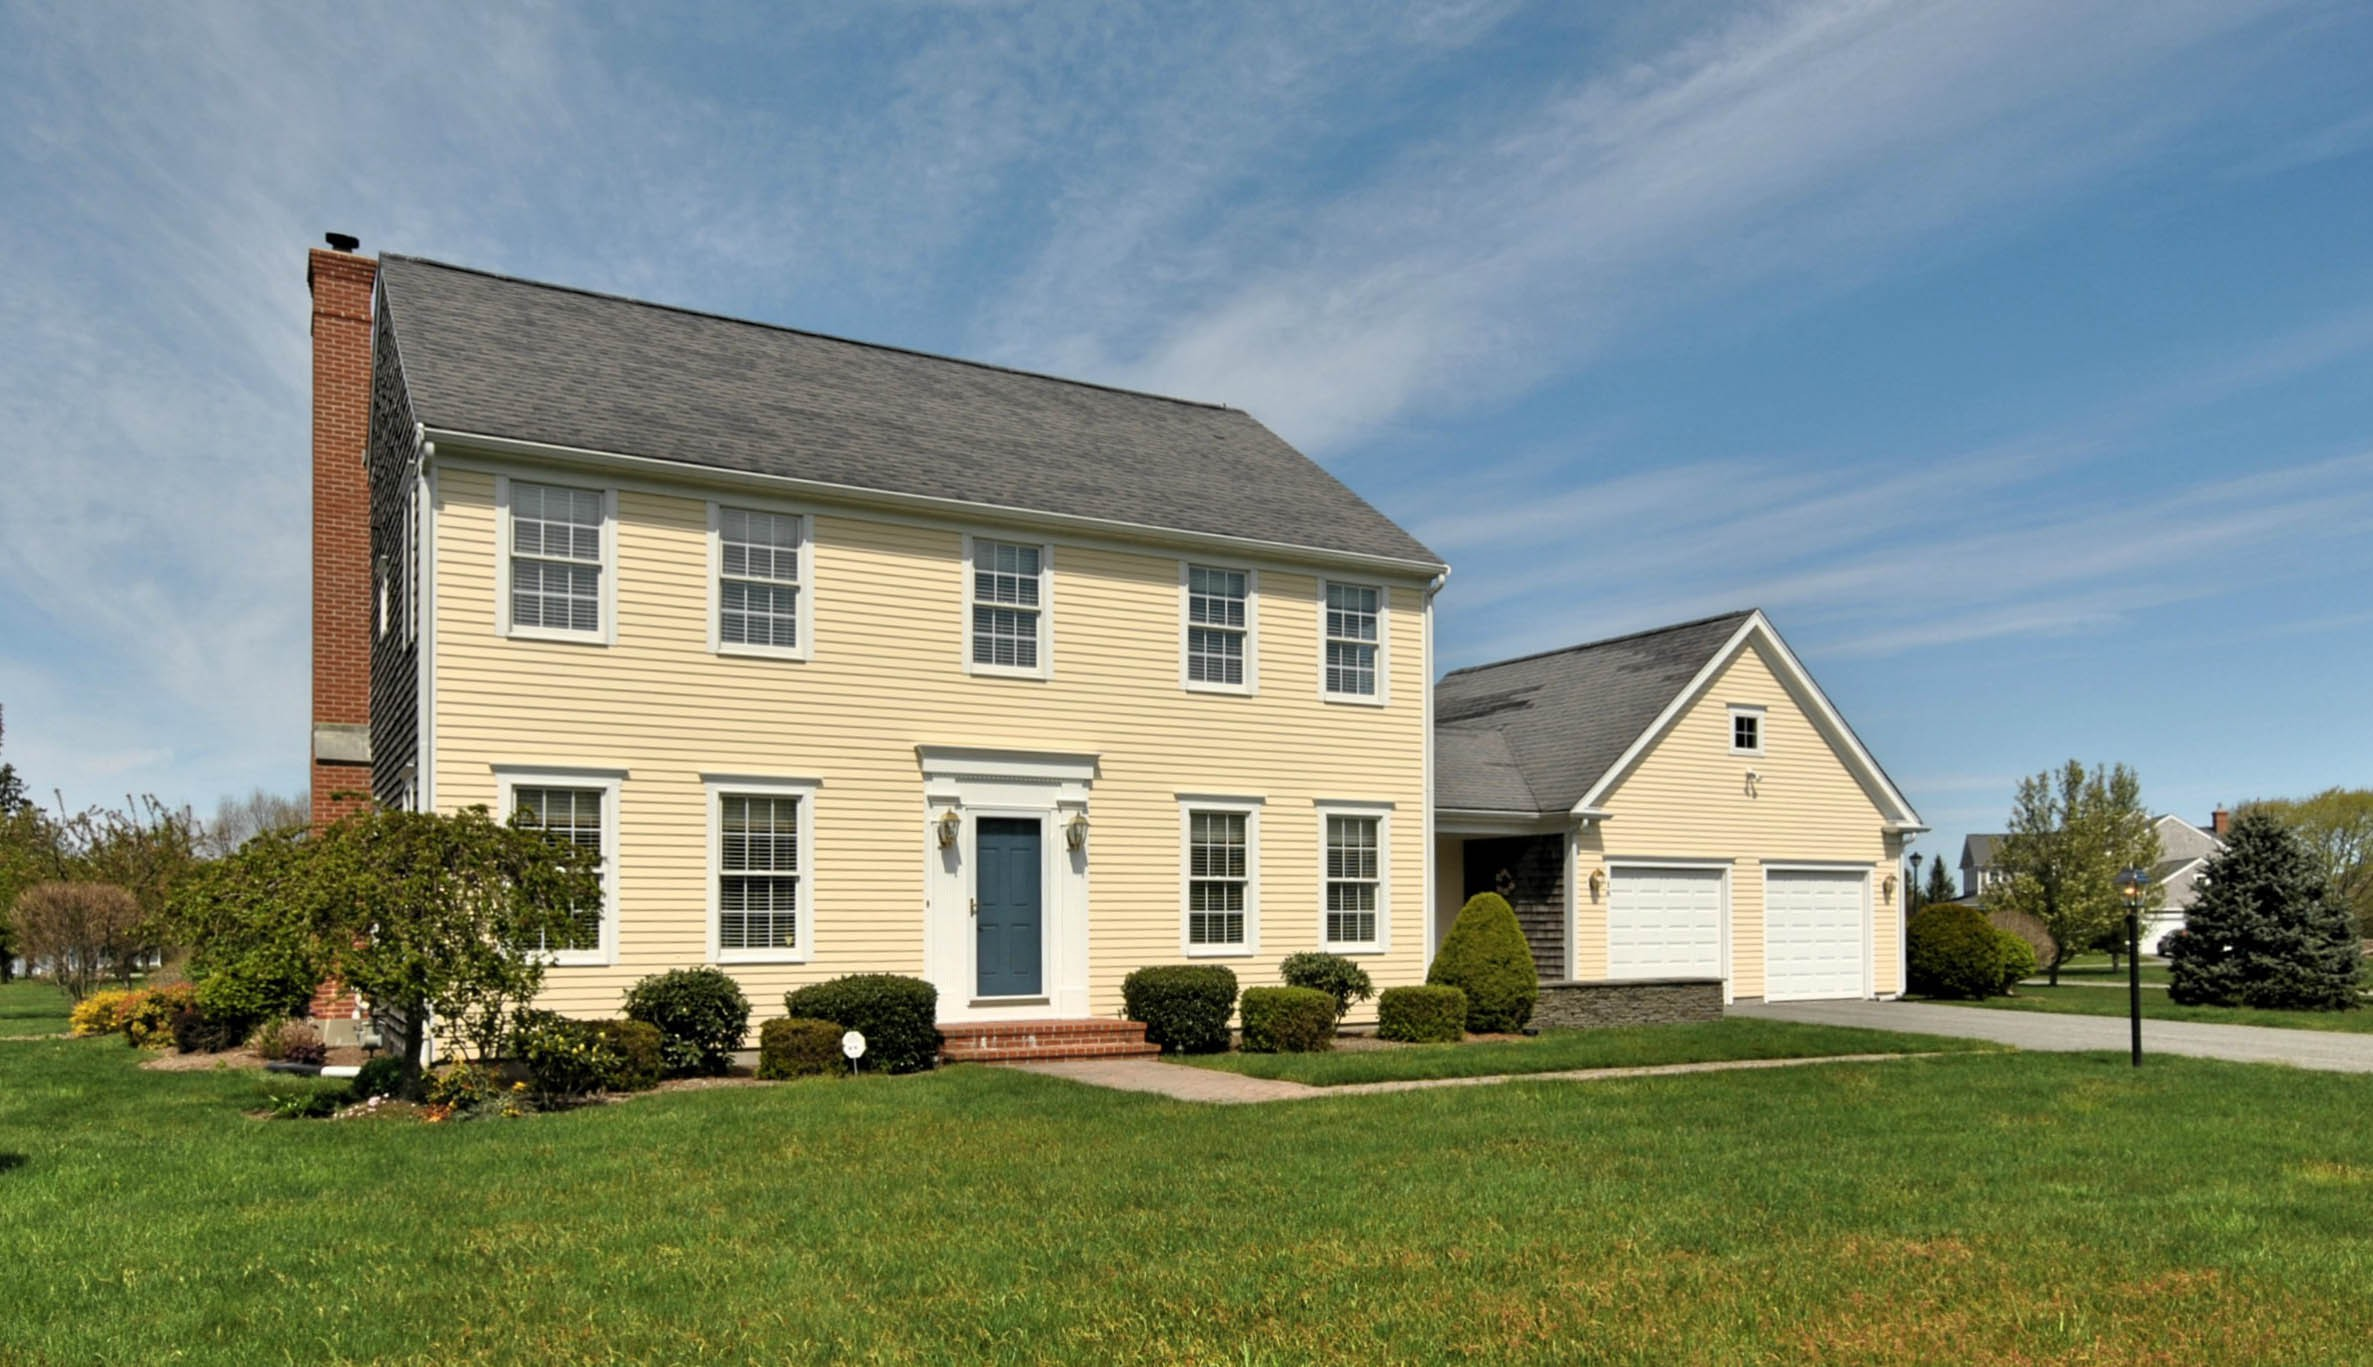 Single Family Home for Sale at Meticulously Maintained Colonial 16 Paddock Lane Middletown, Rhode Island 02842 United States